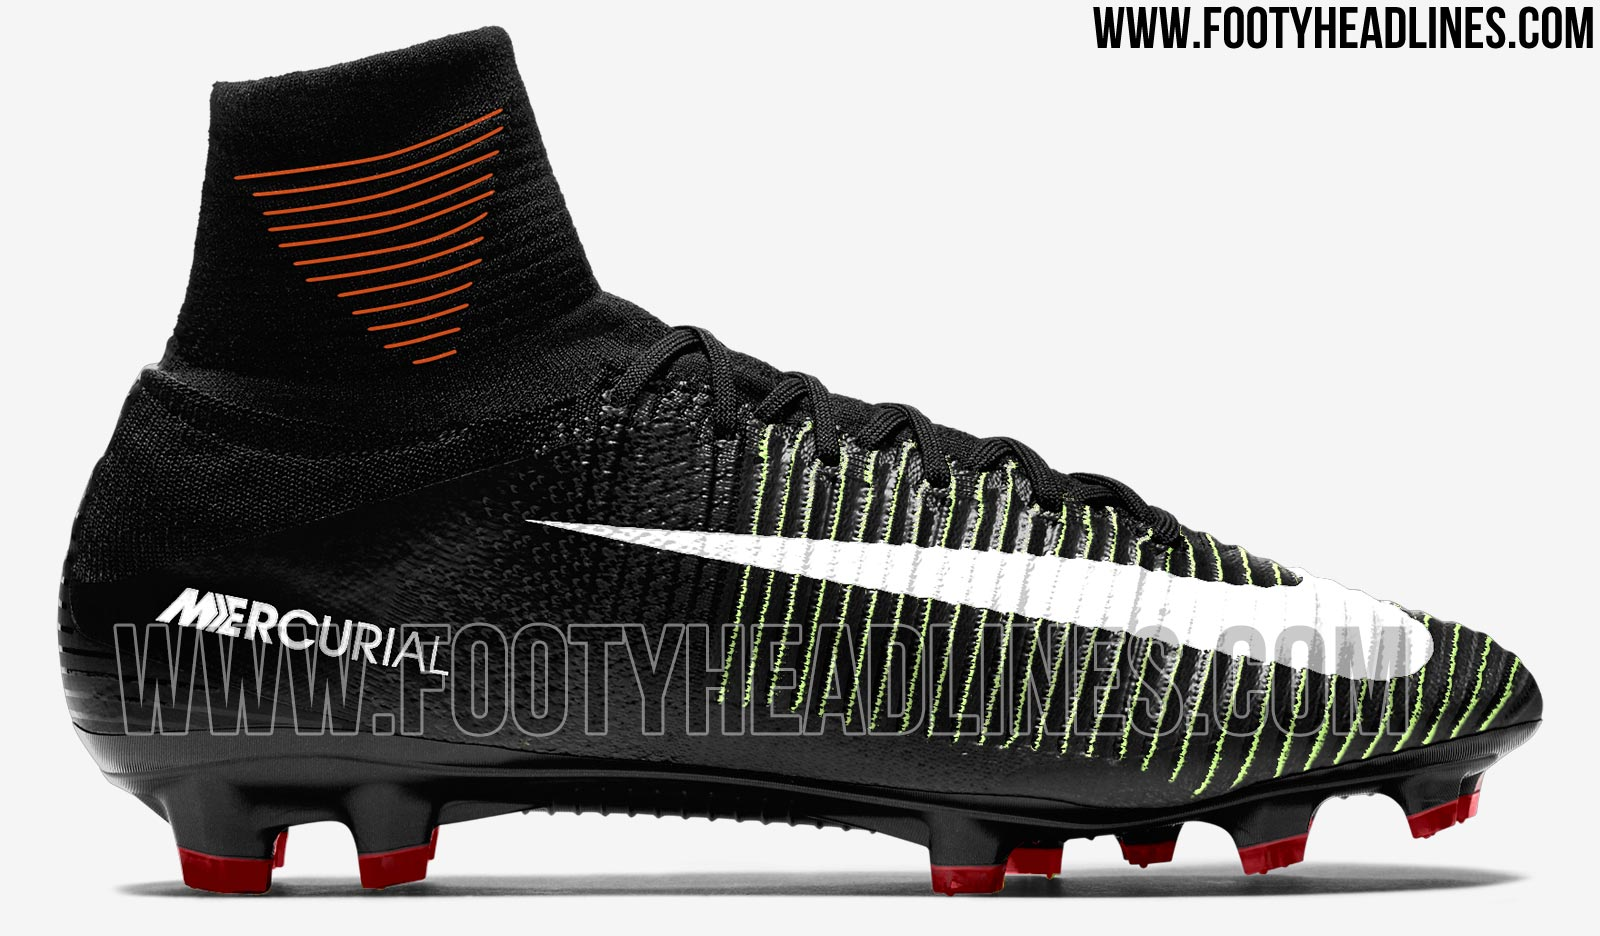 Black Nike Mercurial Superfly 5 2016-2017 Boots Leaked ...